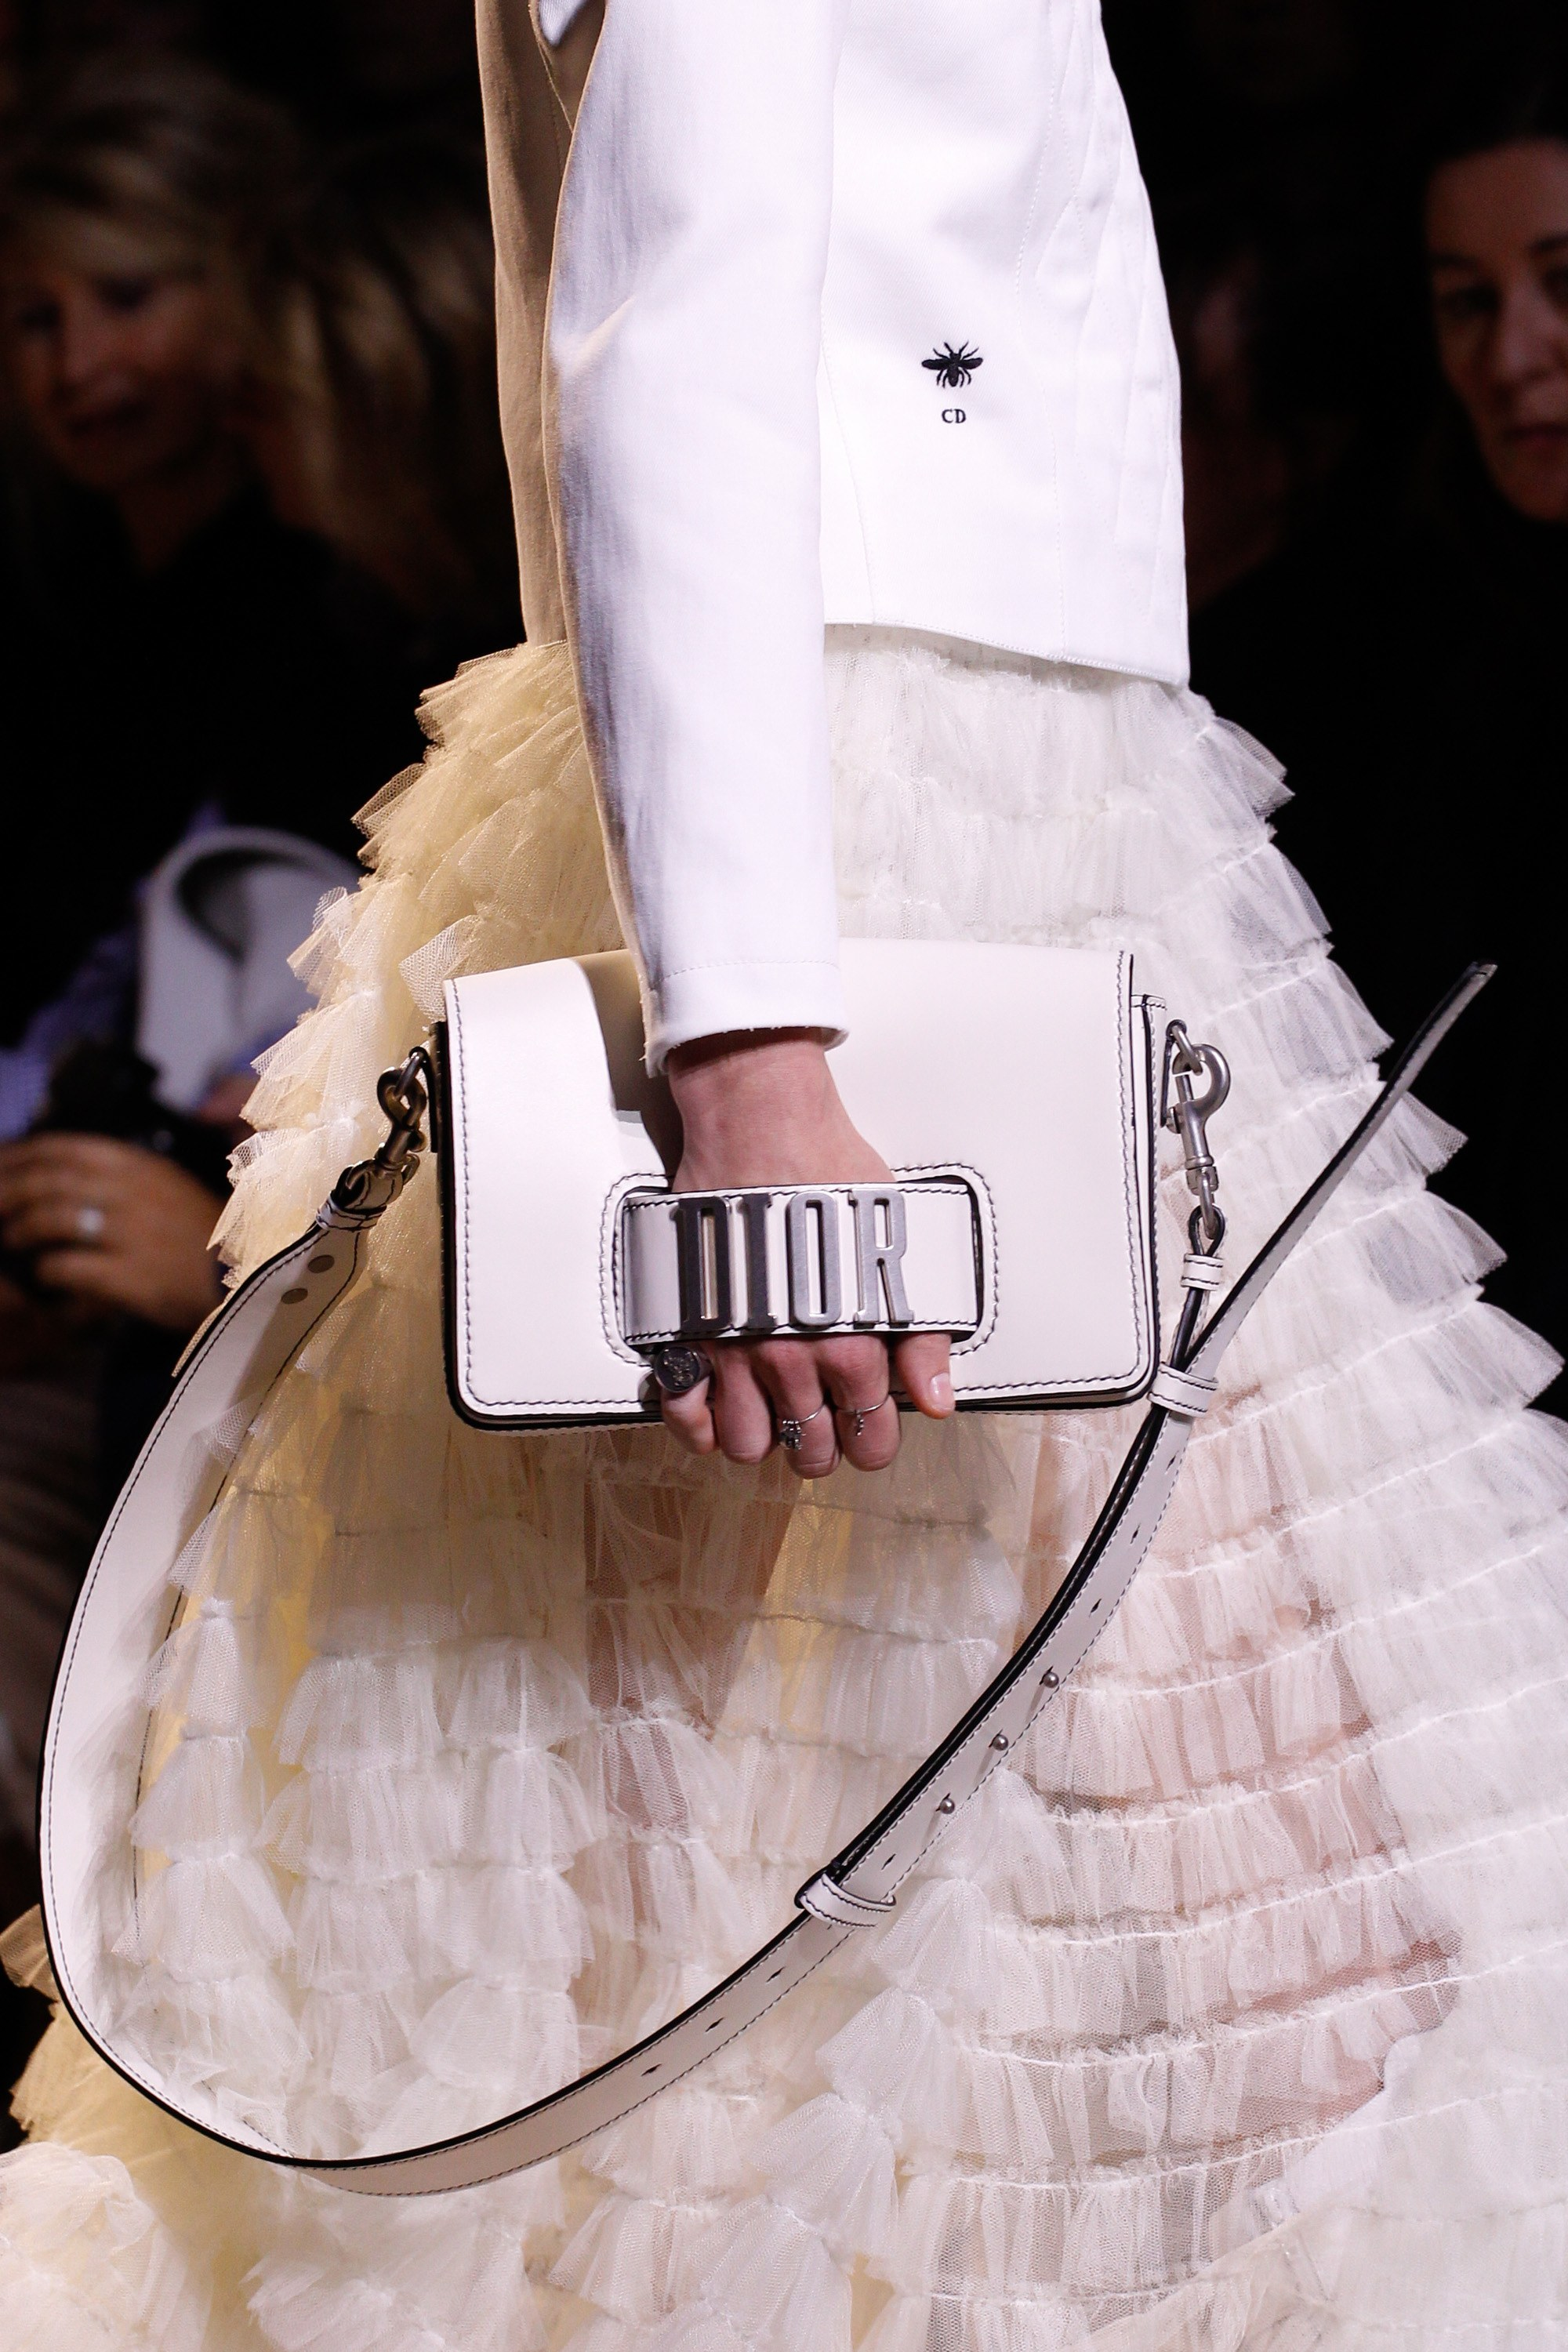 Dior Spring Summer 2017 Runway Bag Collection Spotted